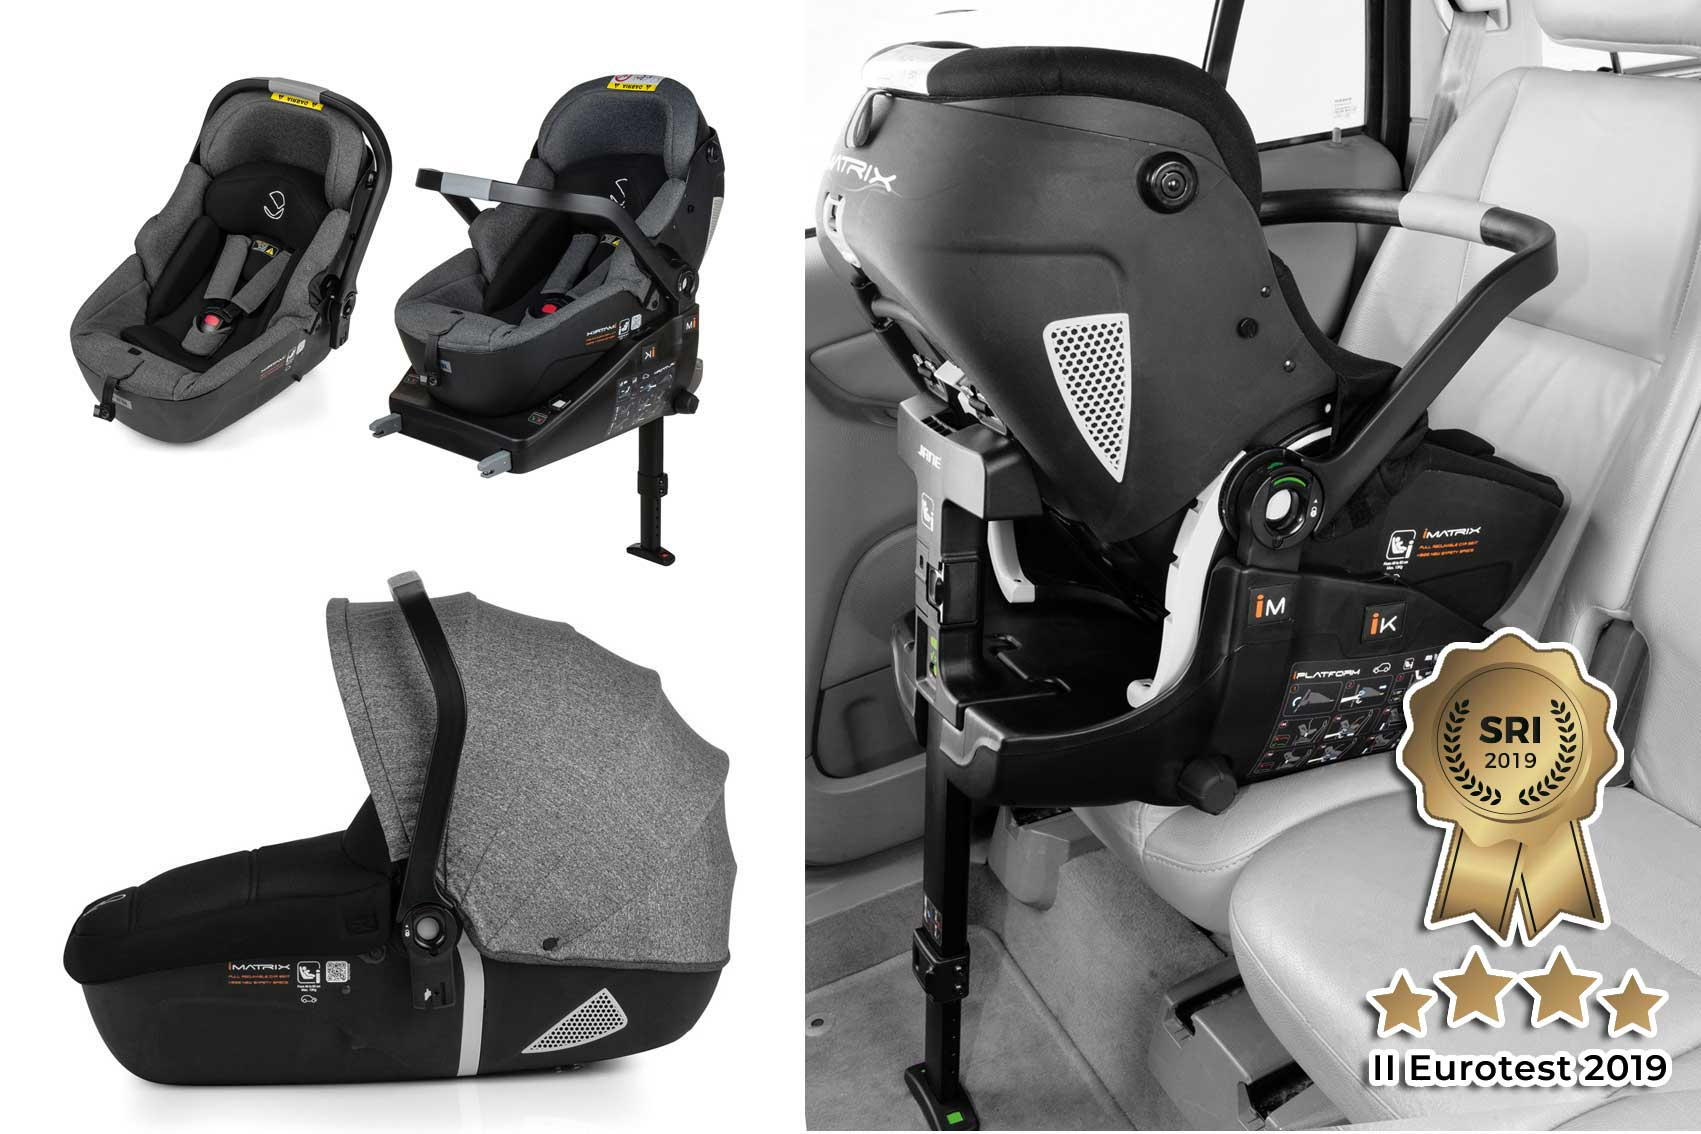 iMatrix iSize Car Seat and Carrycot system